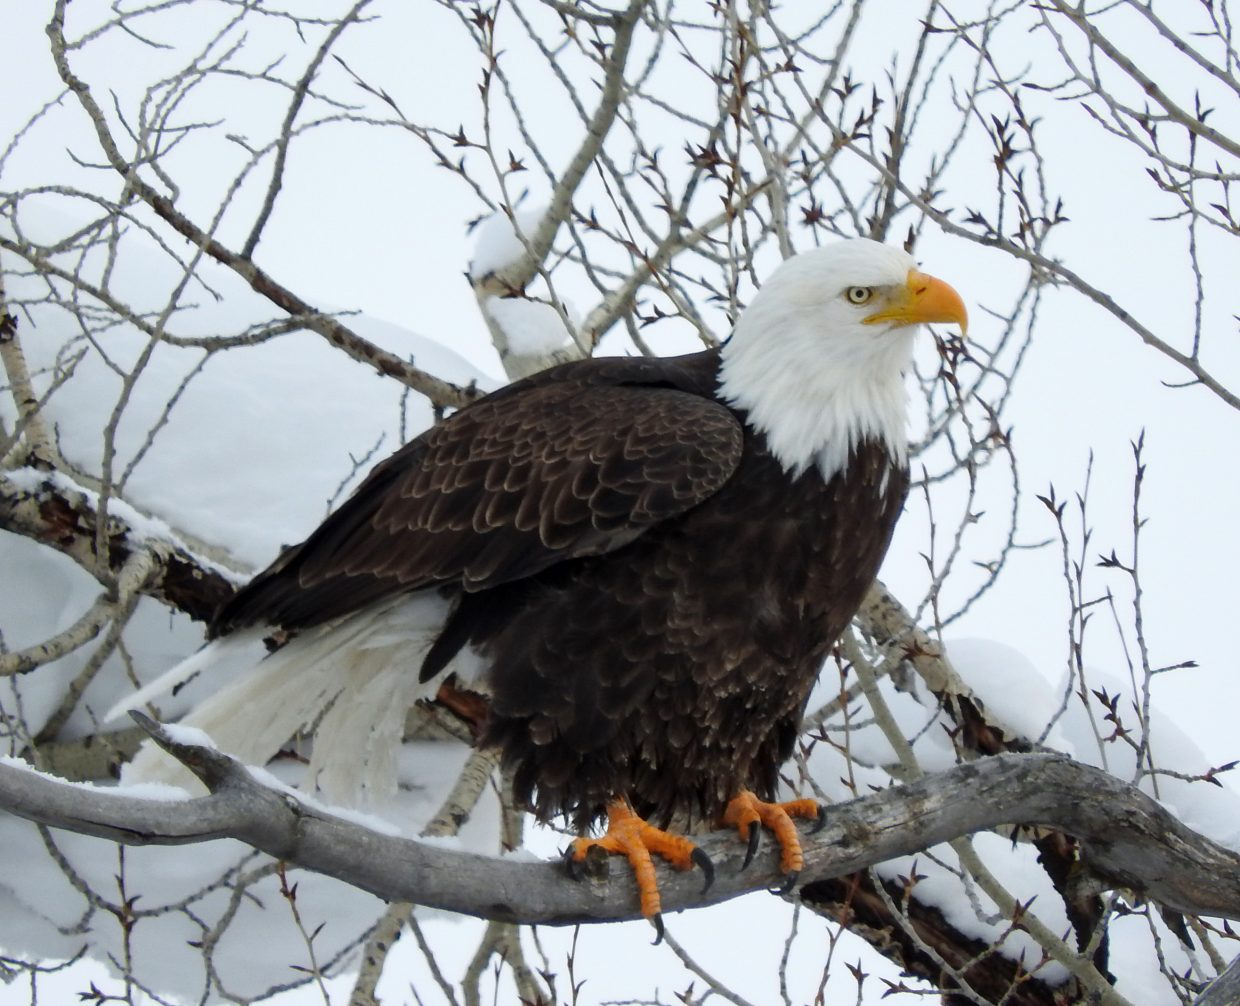 Bald Eagle along the Yampa River in Steamboat Springs. Submitted by Tresa Moulton.